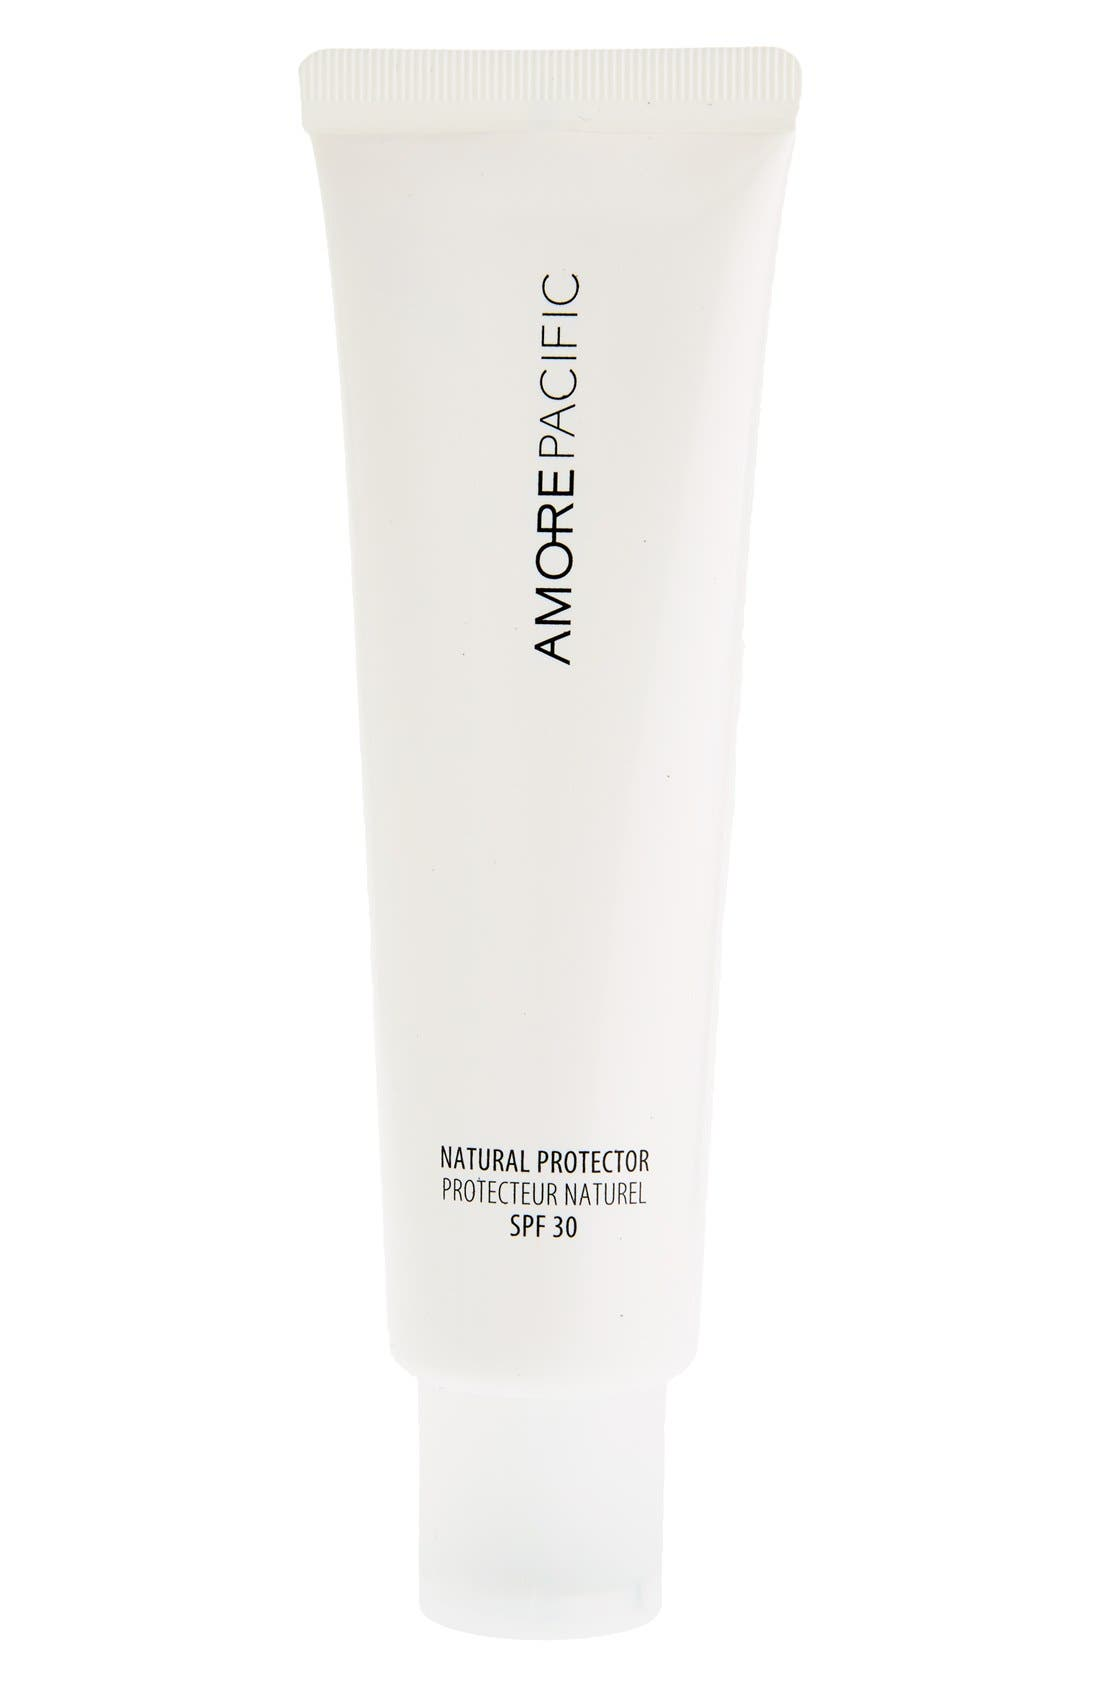 AMOREPACIFIC 'Natural Protector' Hydrating Sunscreen SPF 30 PA+++